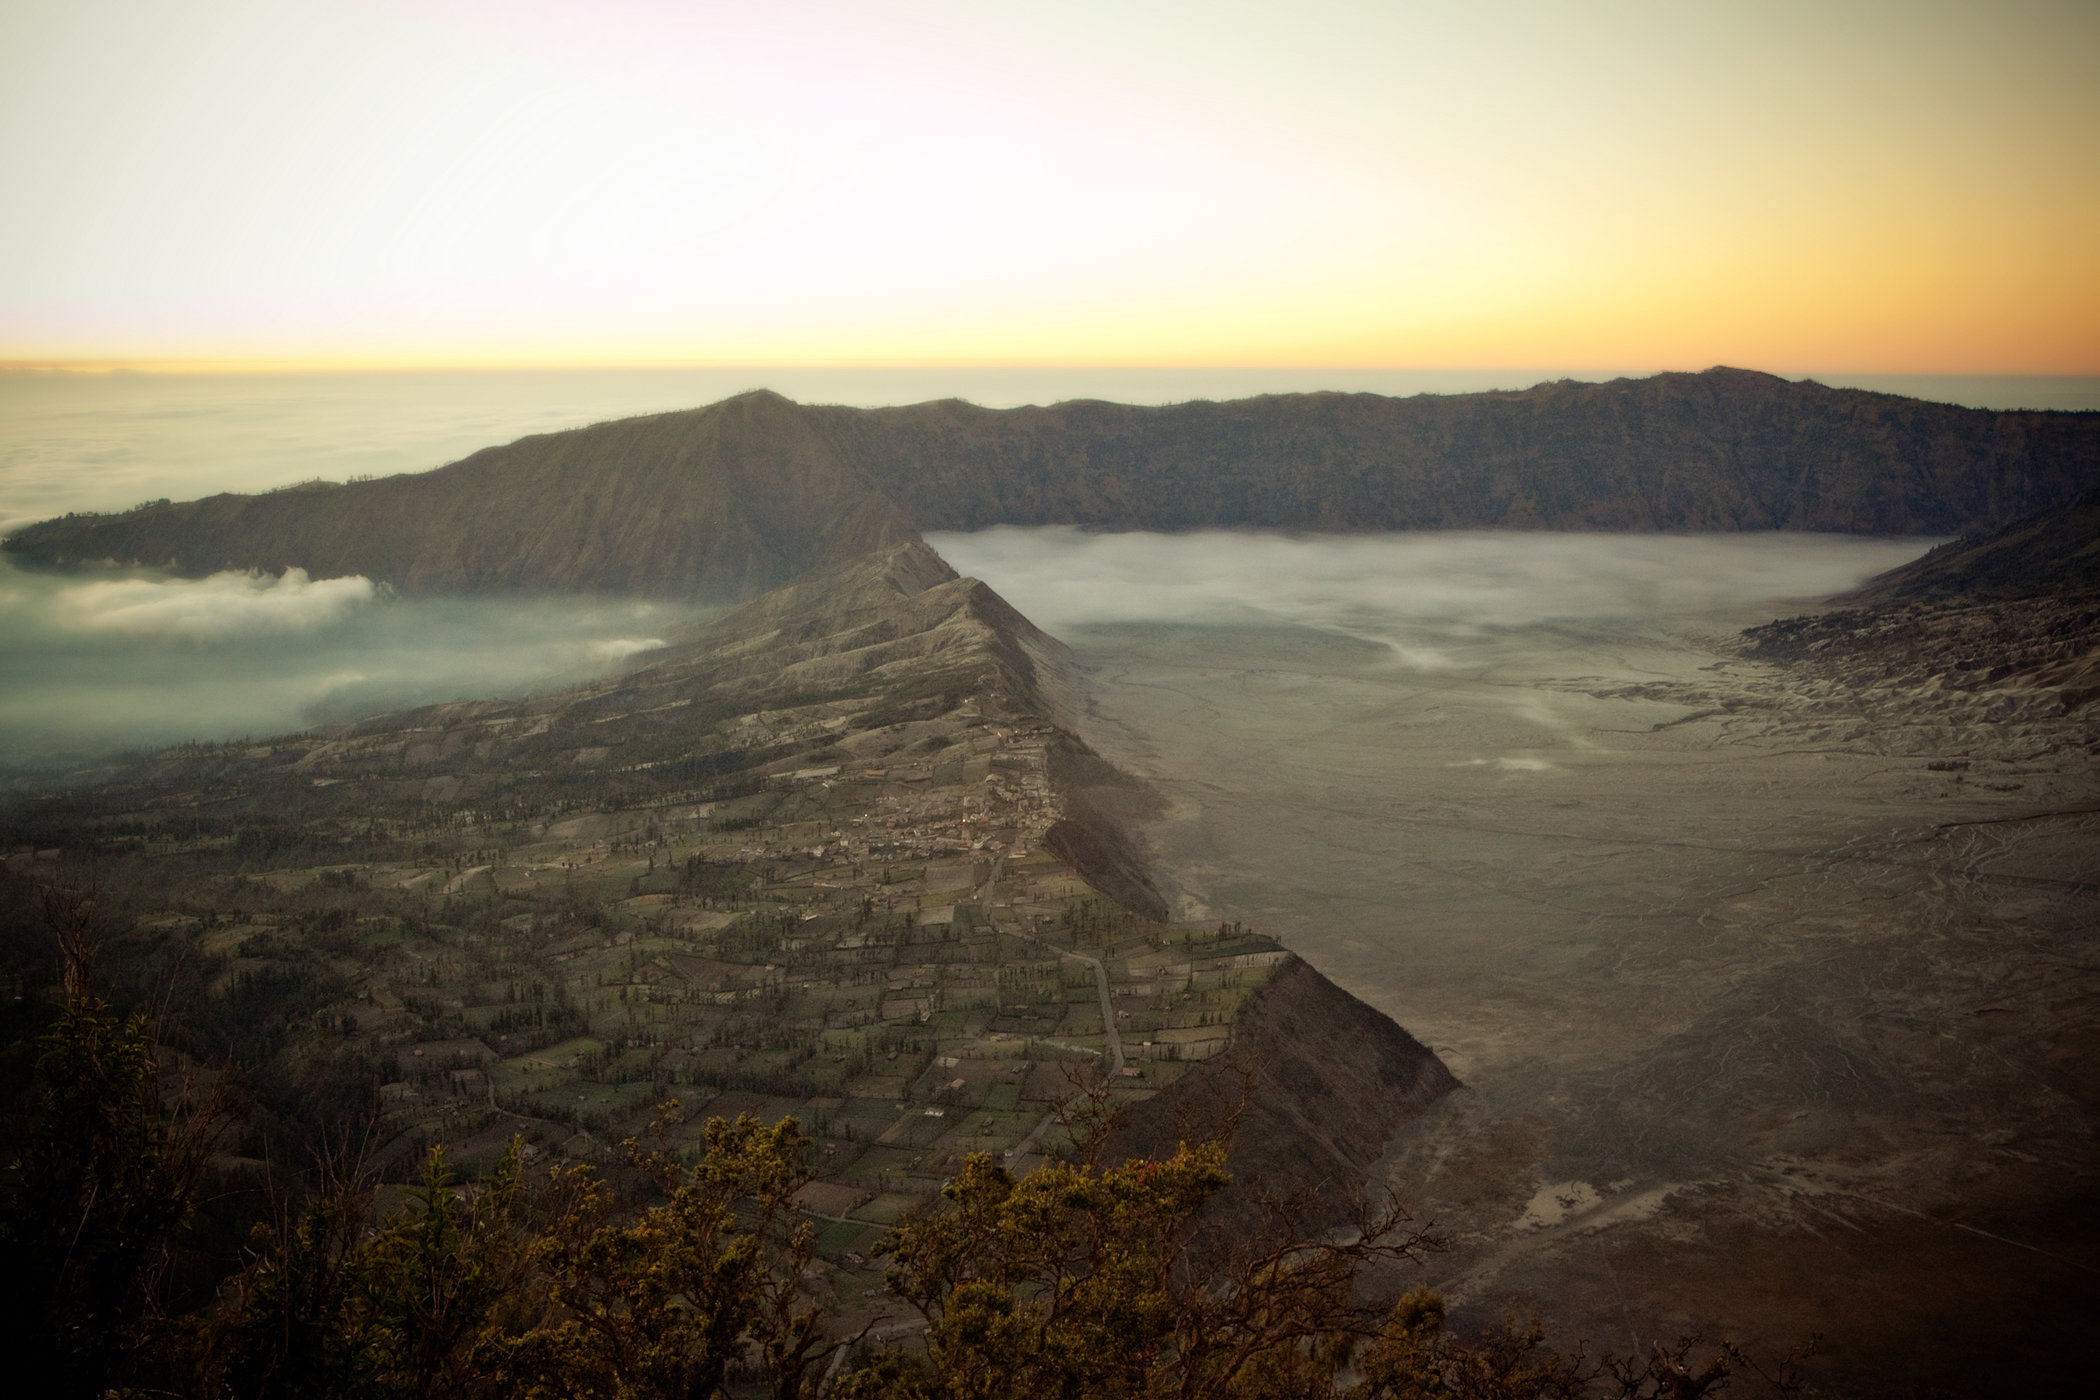 Rim of the Tengger Caldera